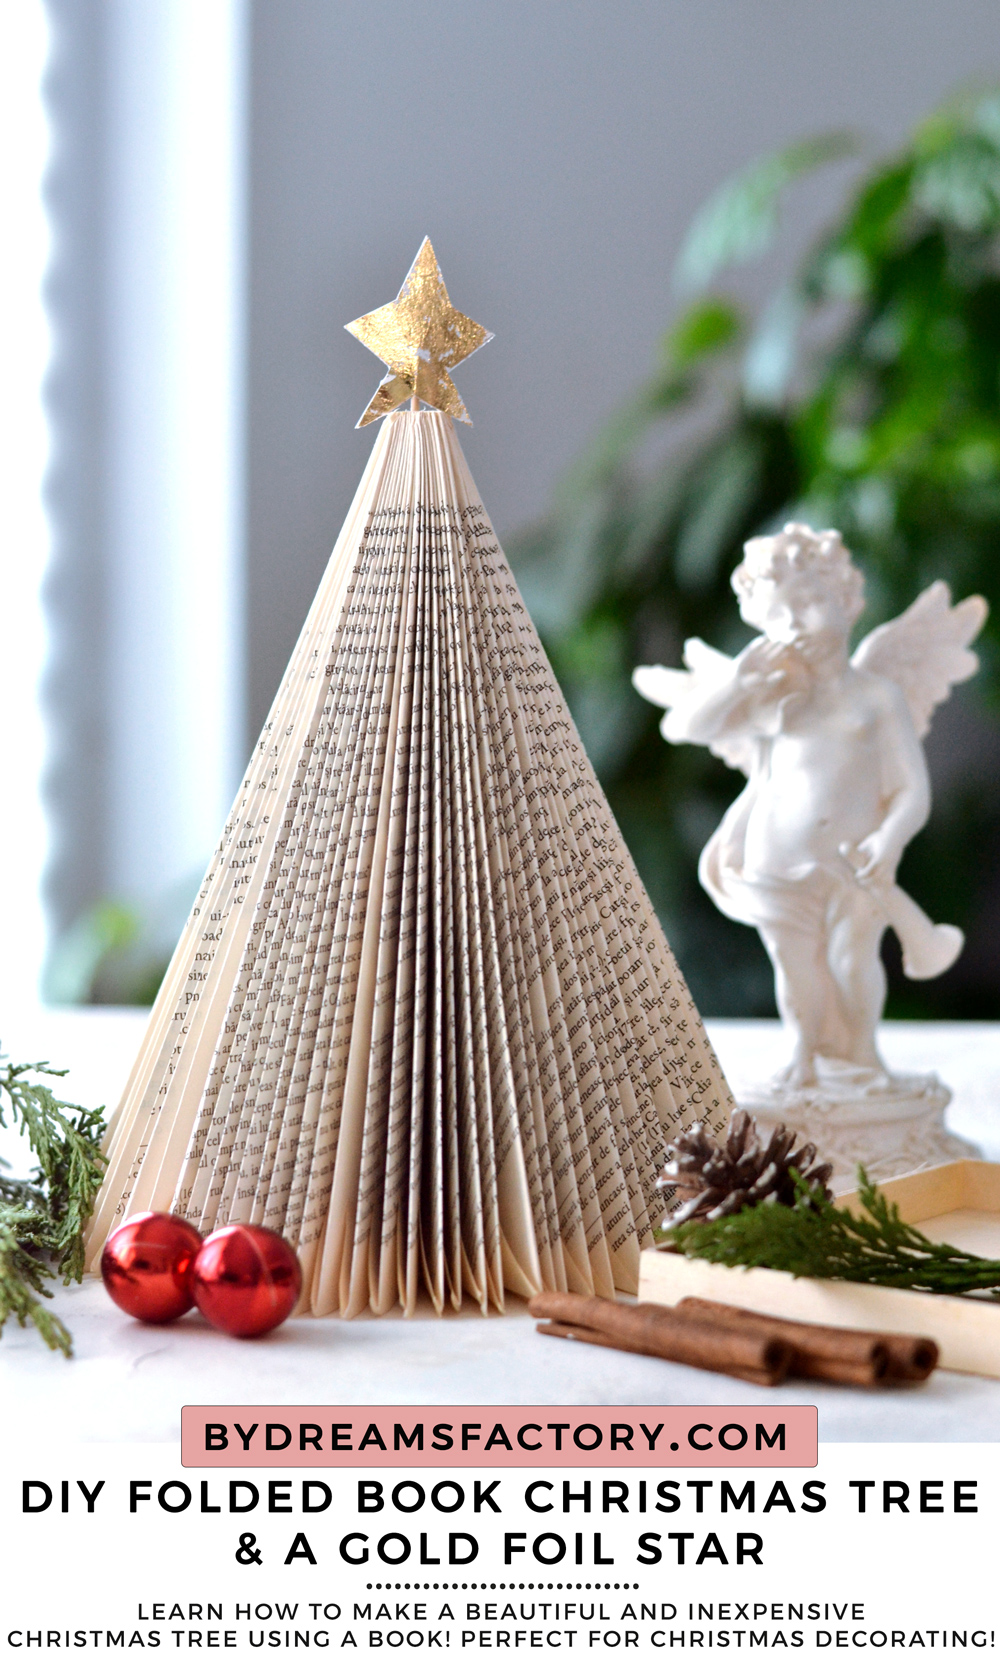 DIY Folded Book Christmas Tree with gold foil star